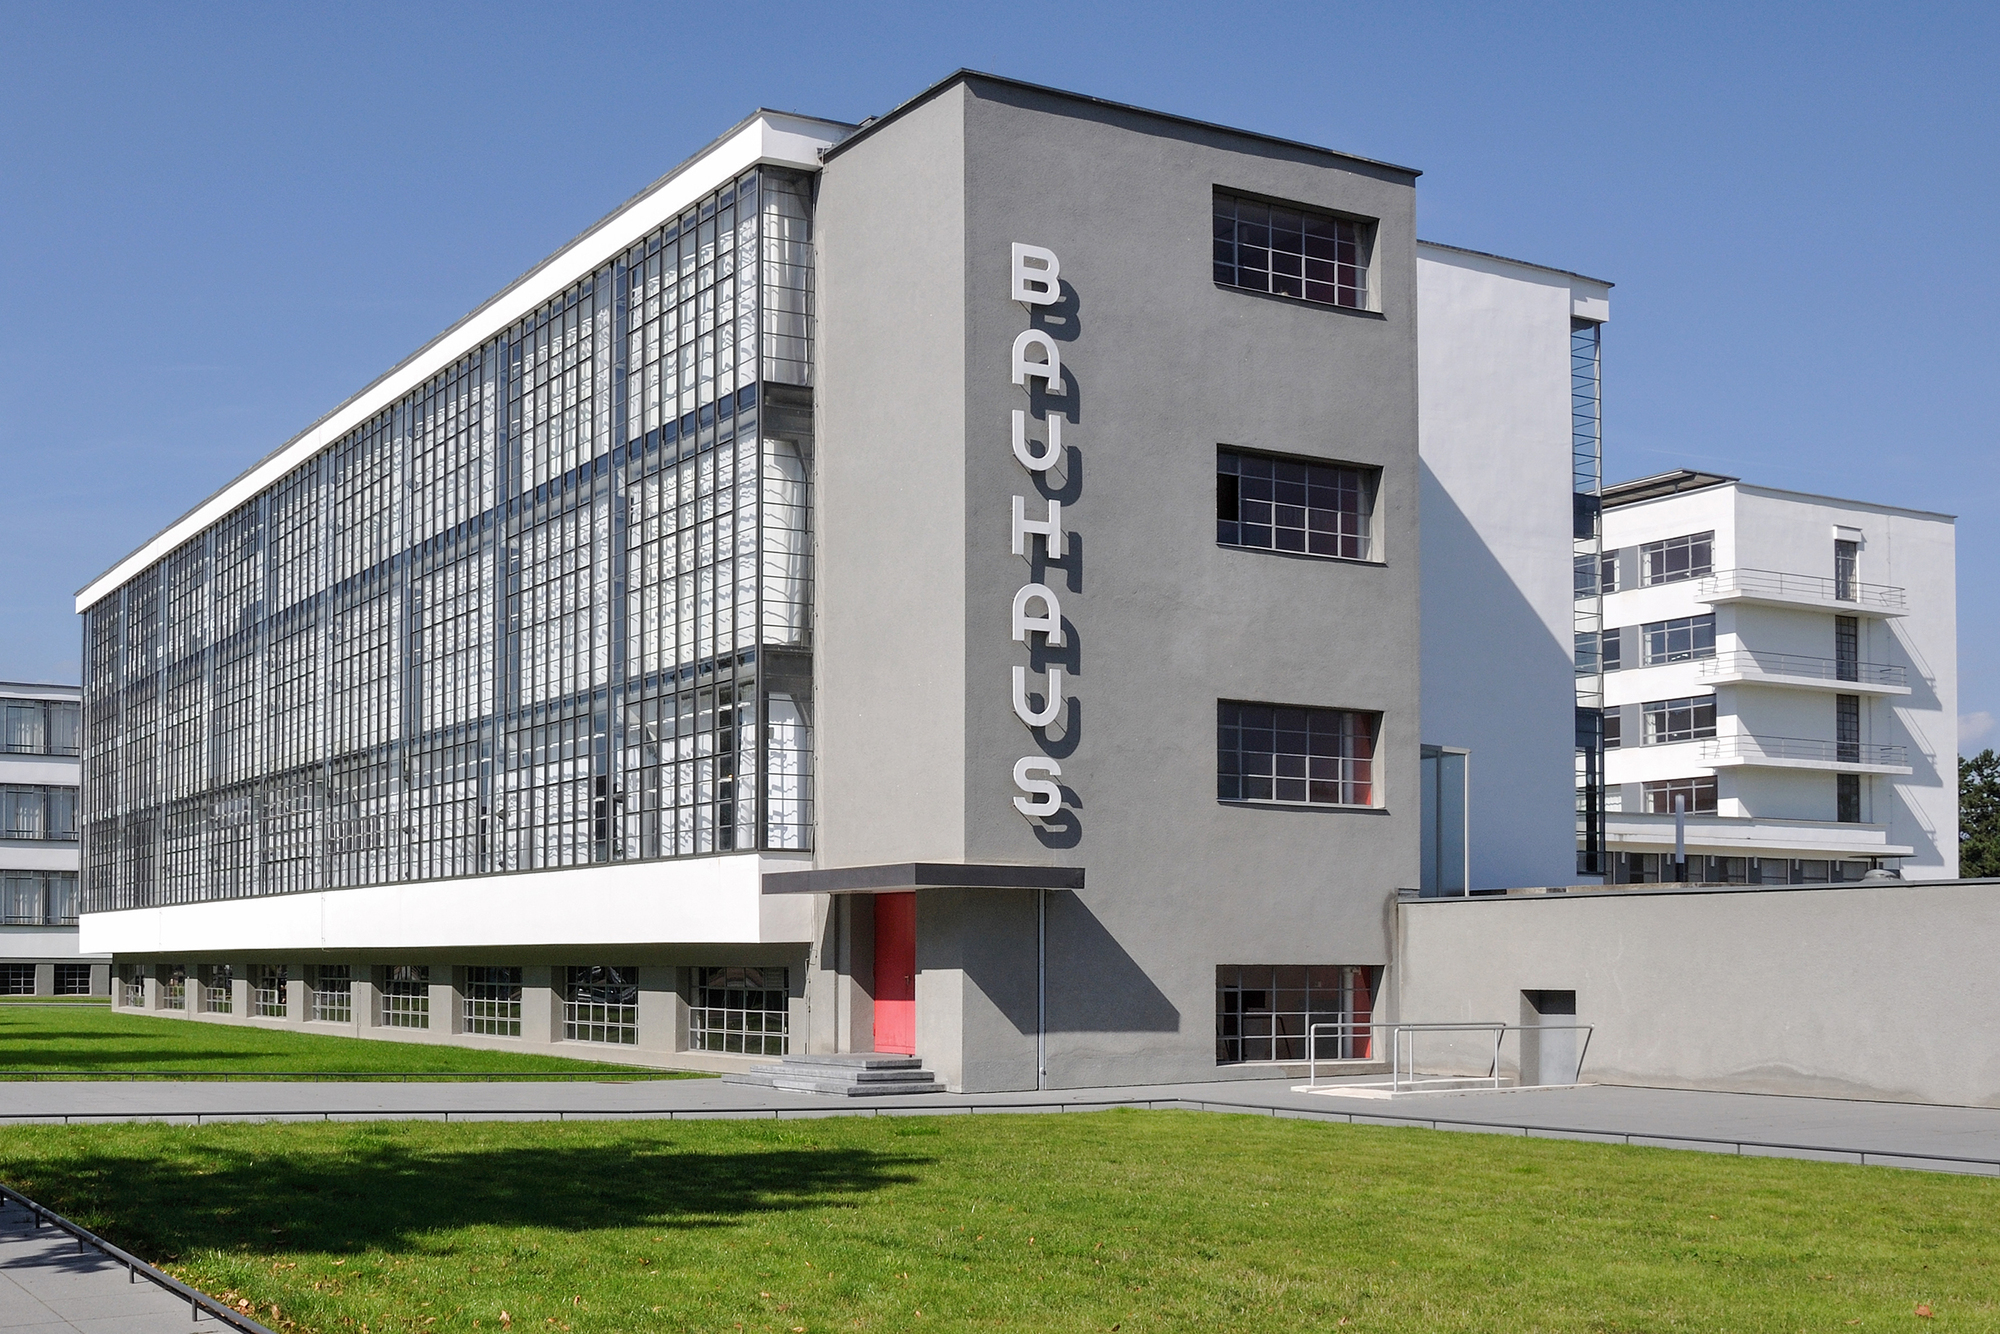 Architectural adventures bauhaus and beyond archdaily for Architecture bauhaus